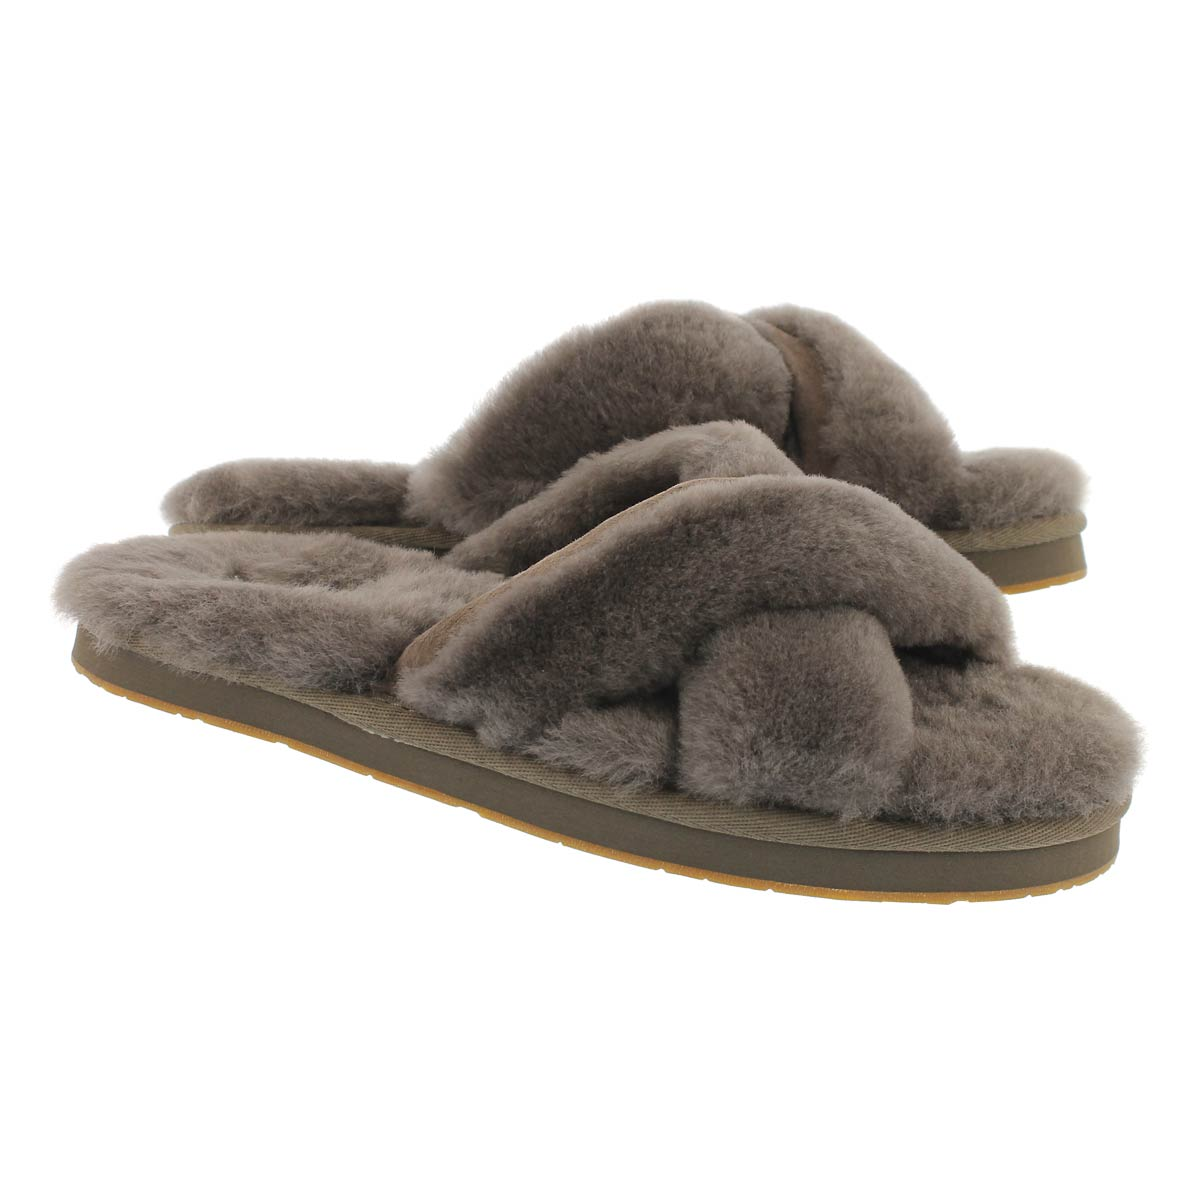 Lds Abela slate sheepskin slipper